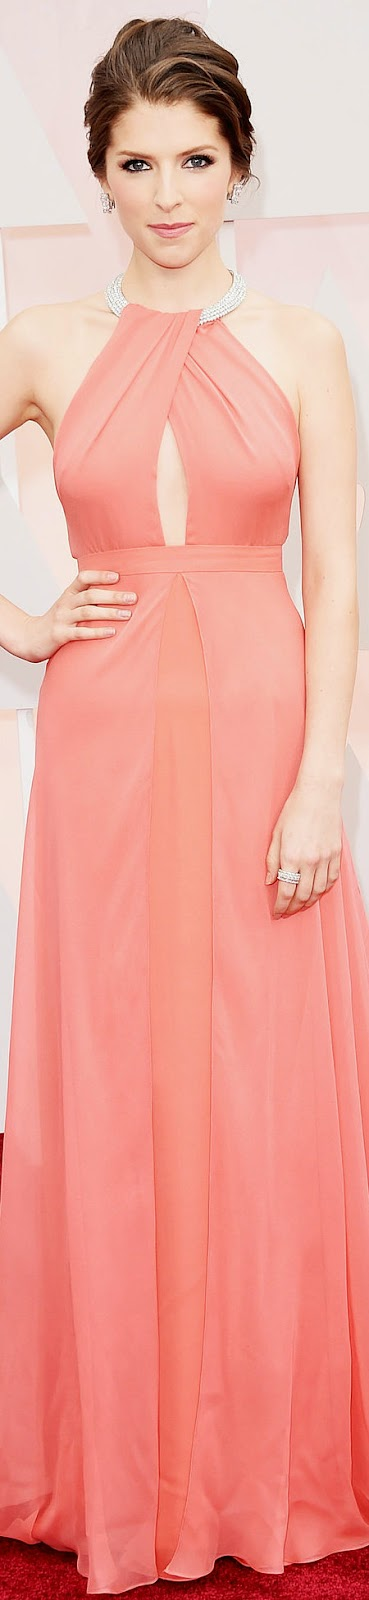 ANNA KENDRICKS 2015 OSCAR RED CARPET